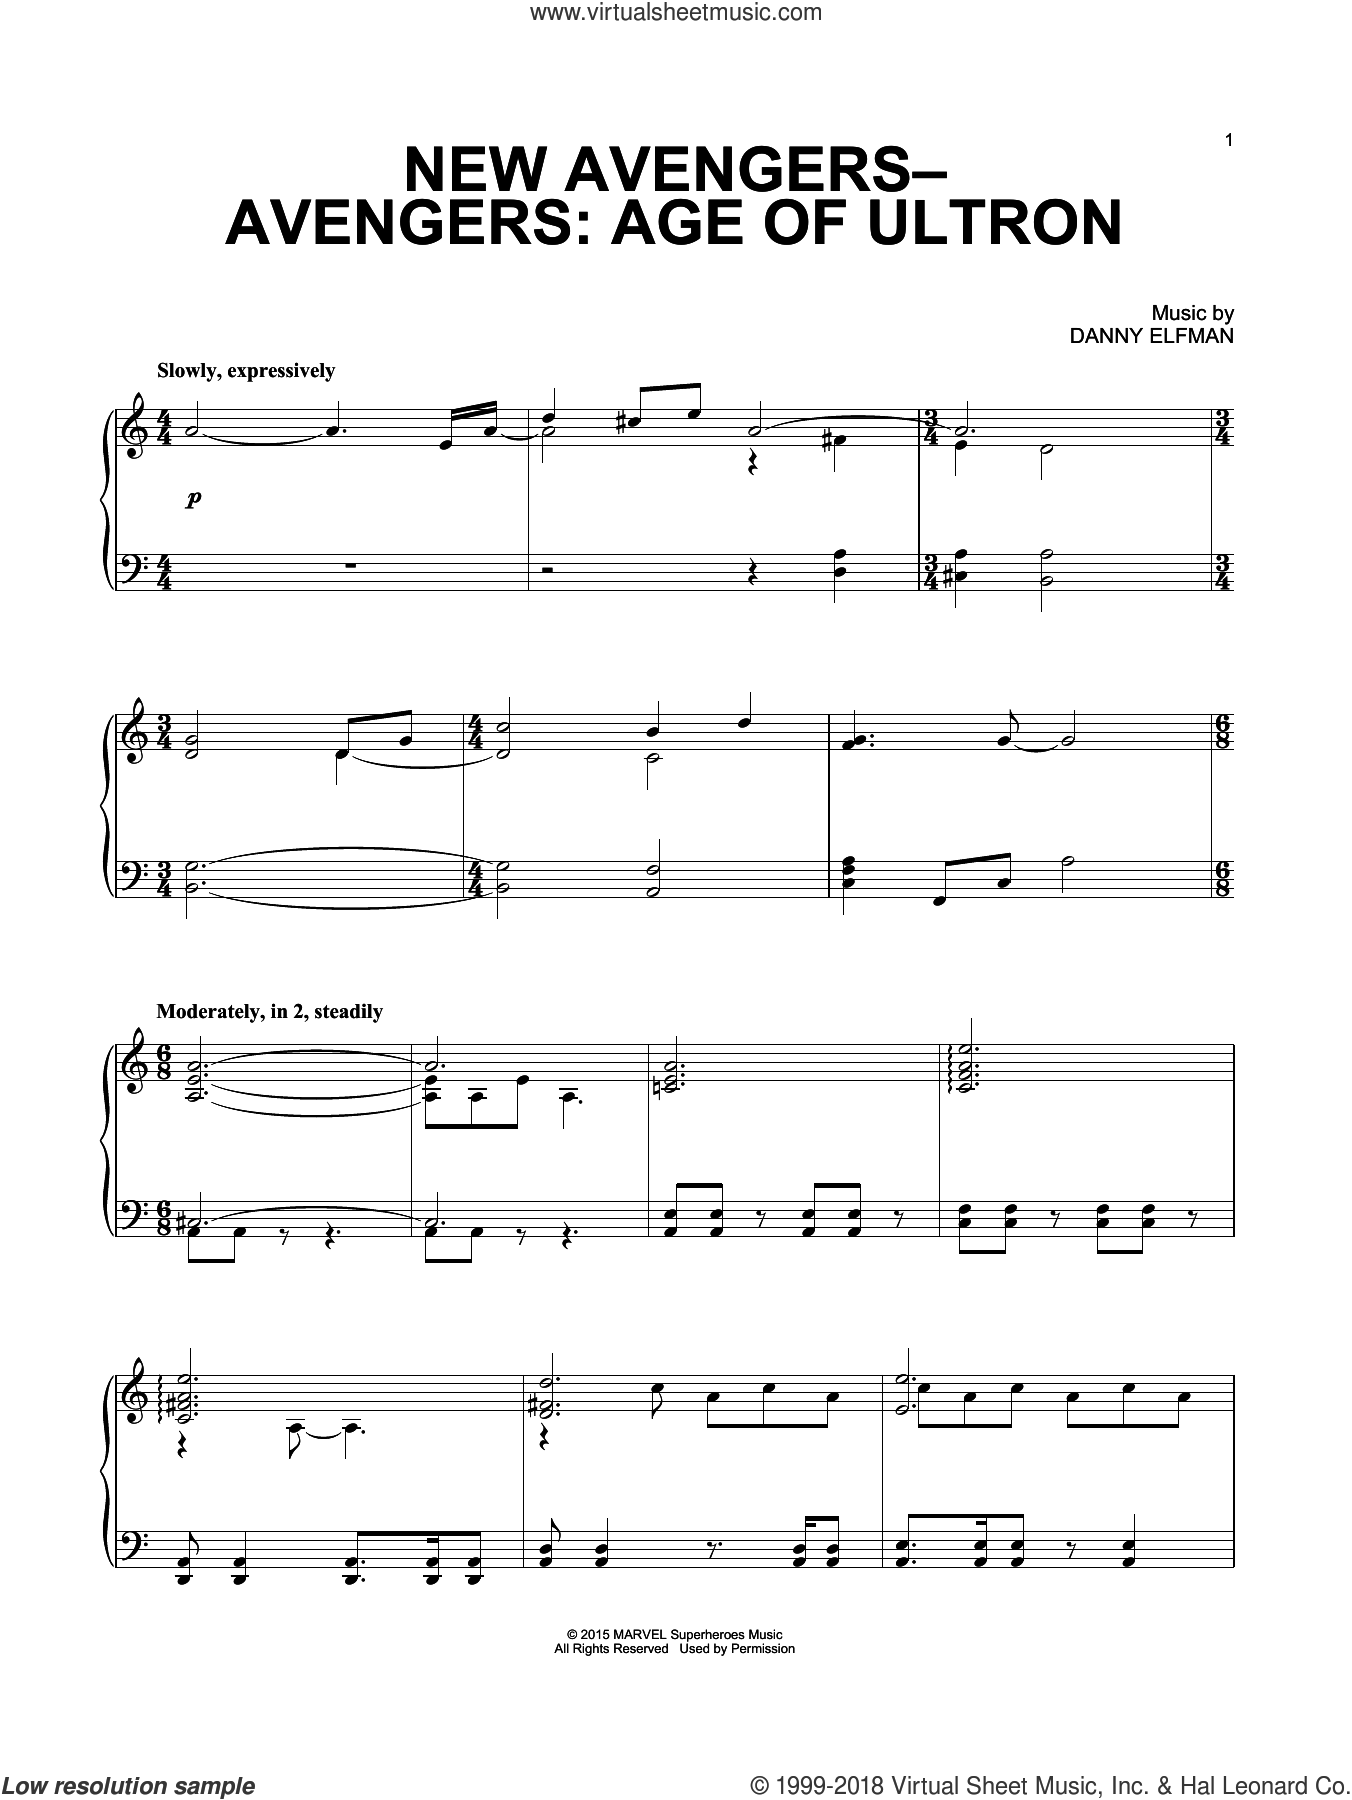 New Avengers-Avengers: Age Of Ultron sheet music for piano solo by Danny Elfman. Score Image Preview.